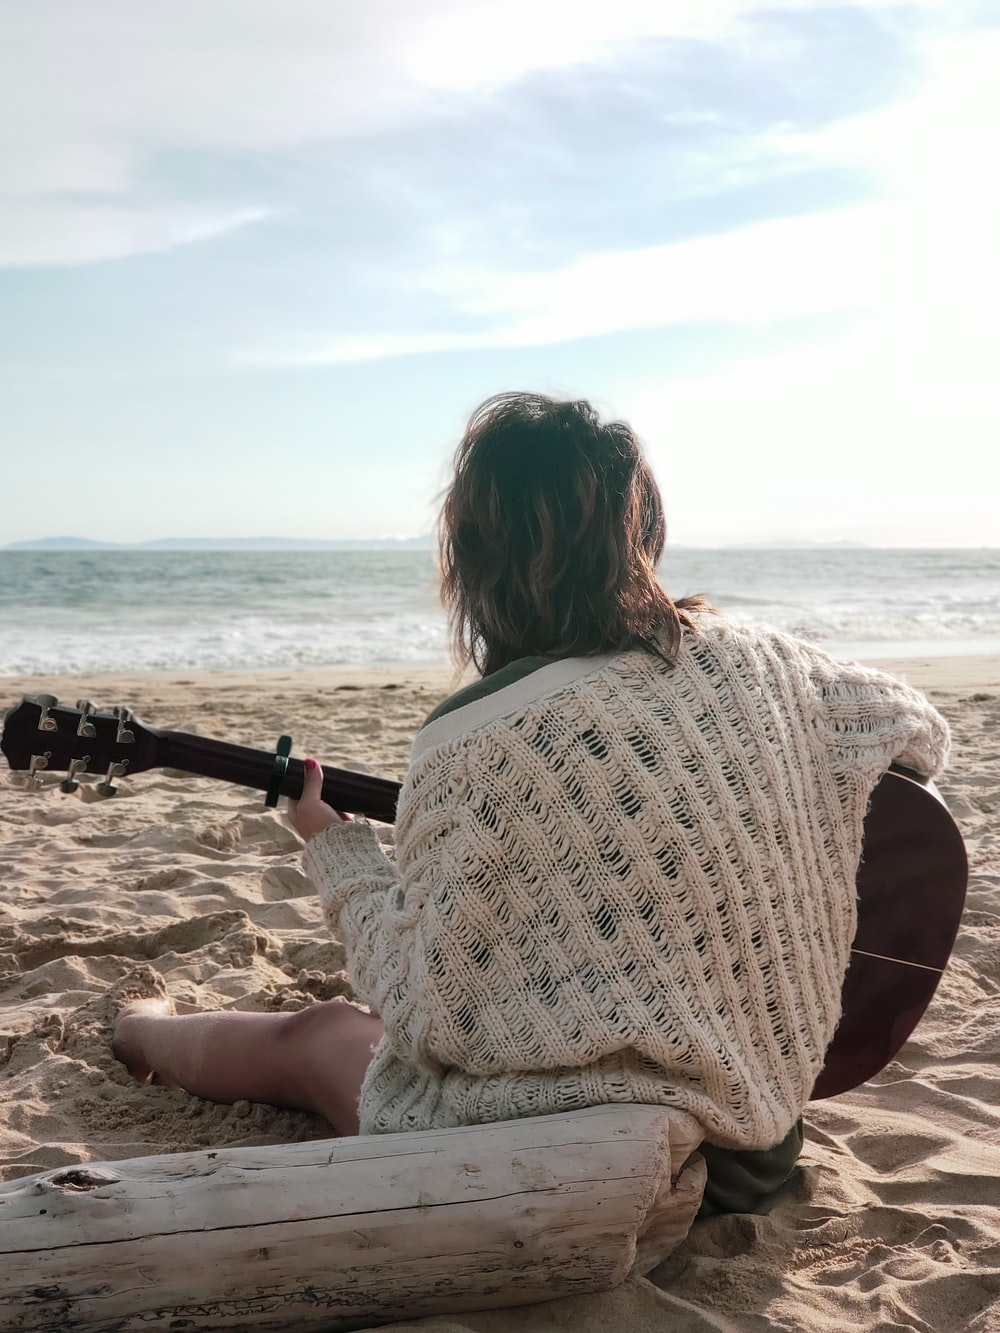 woman sitting on shore holding guitar